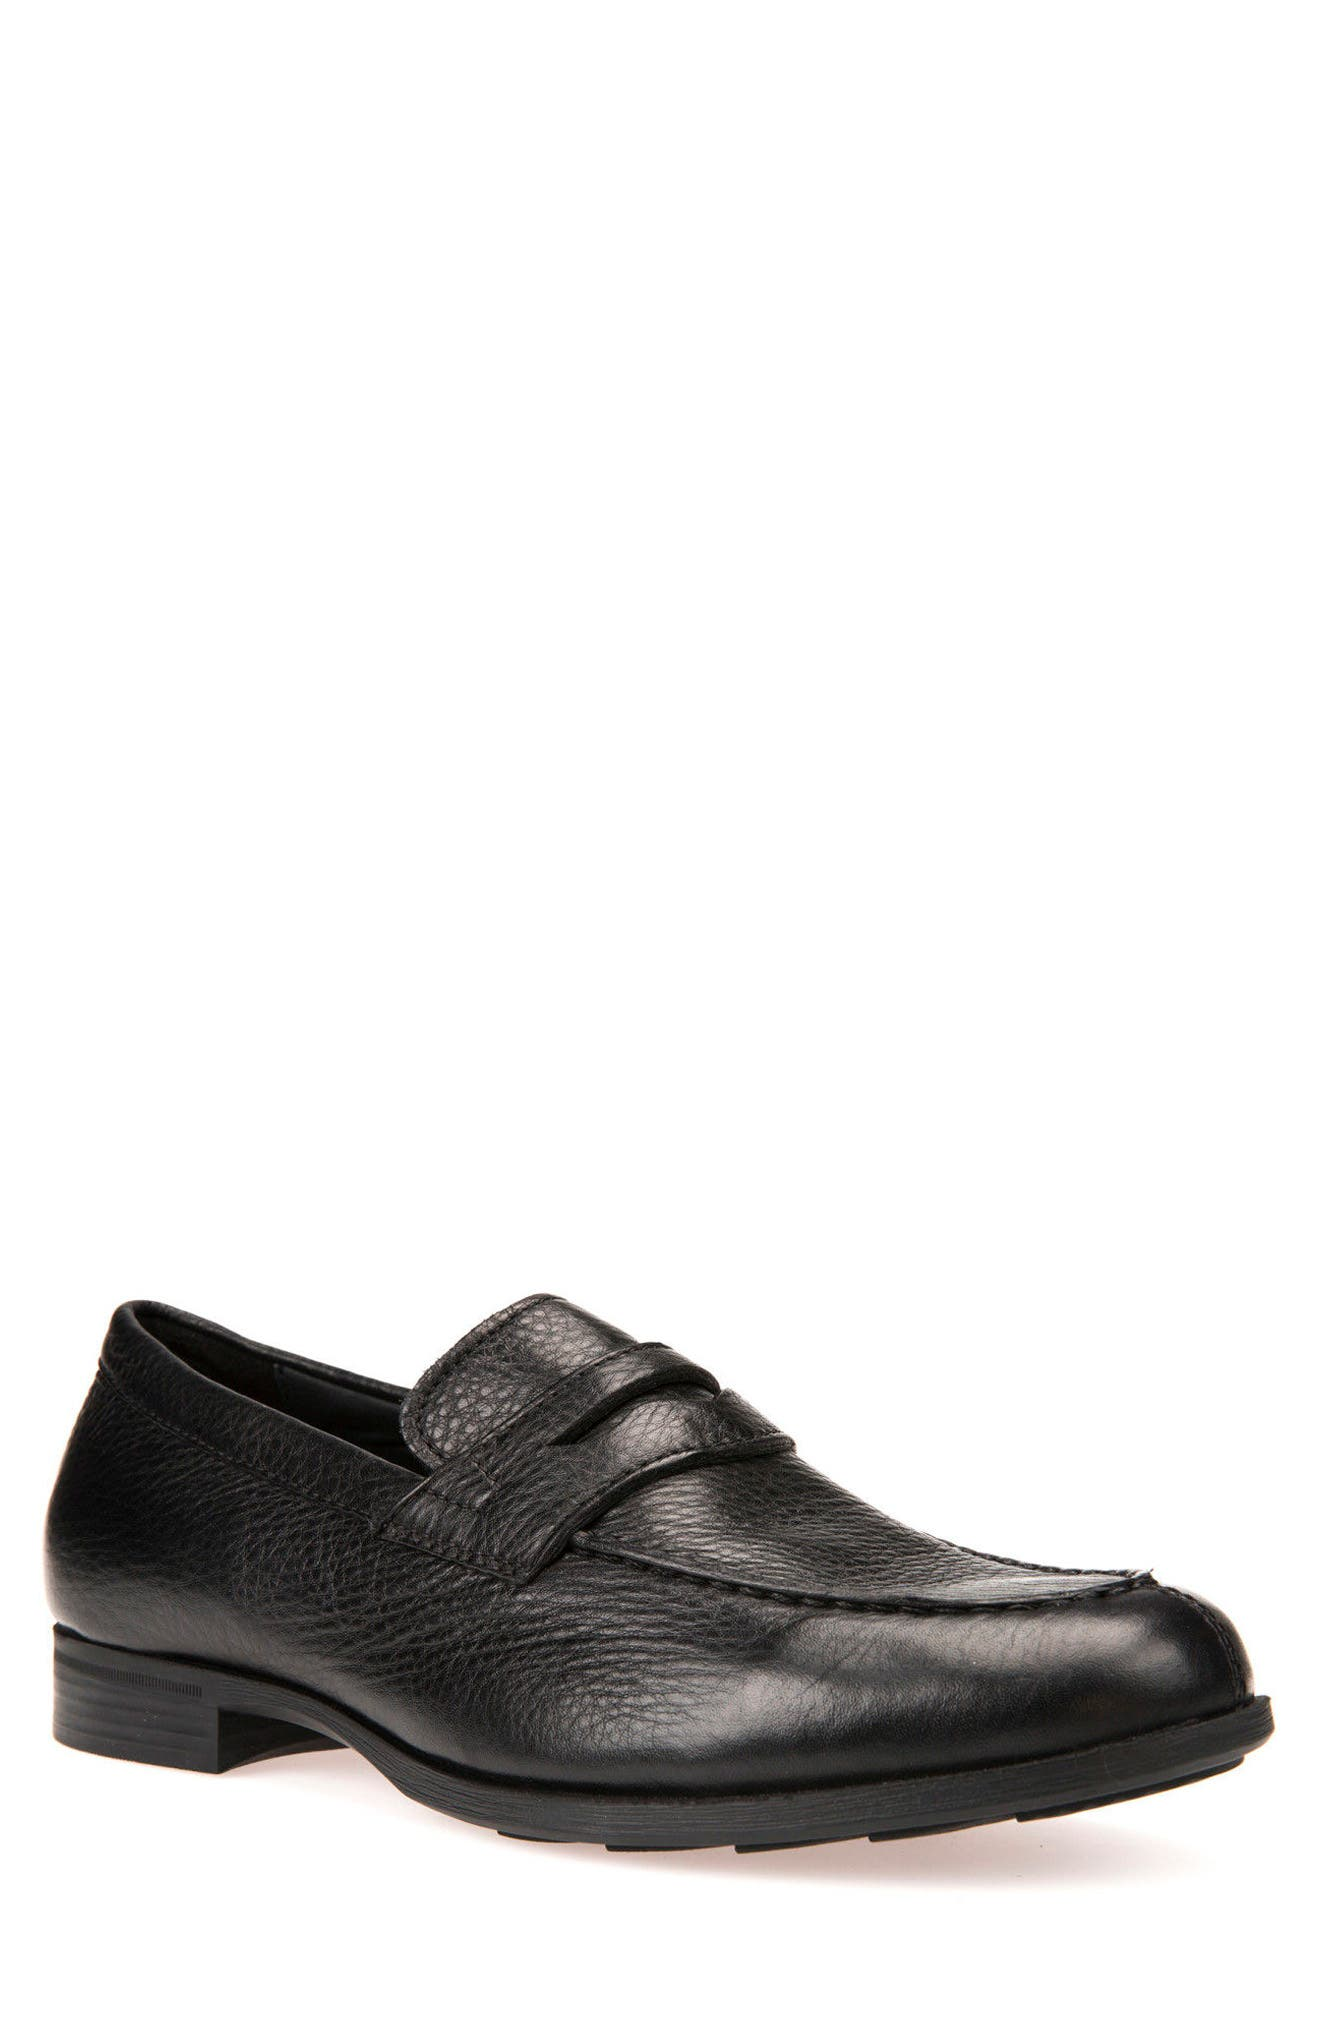 GEOX Besmington Penny Loafer